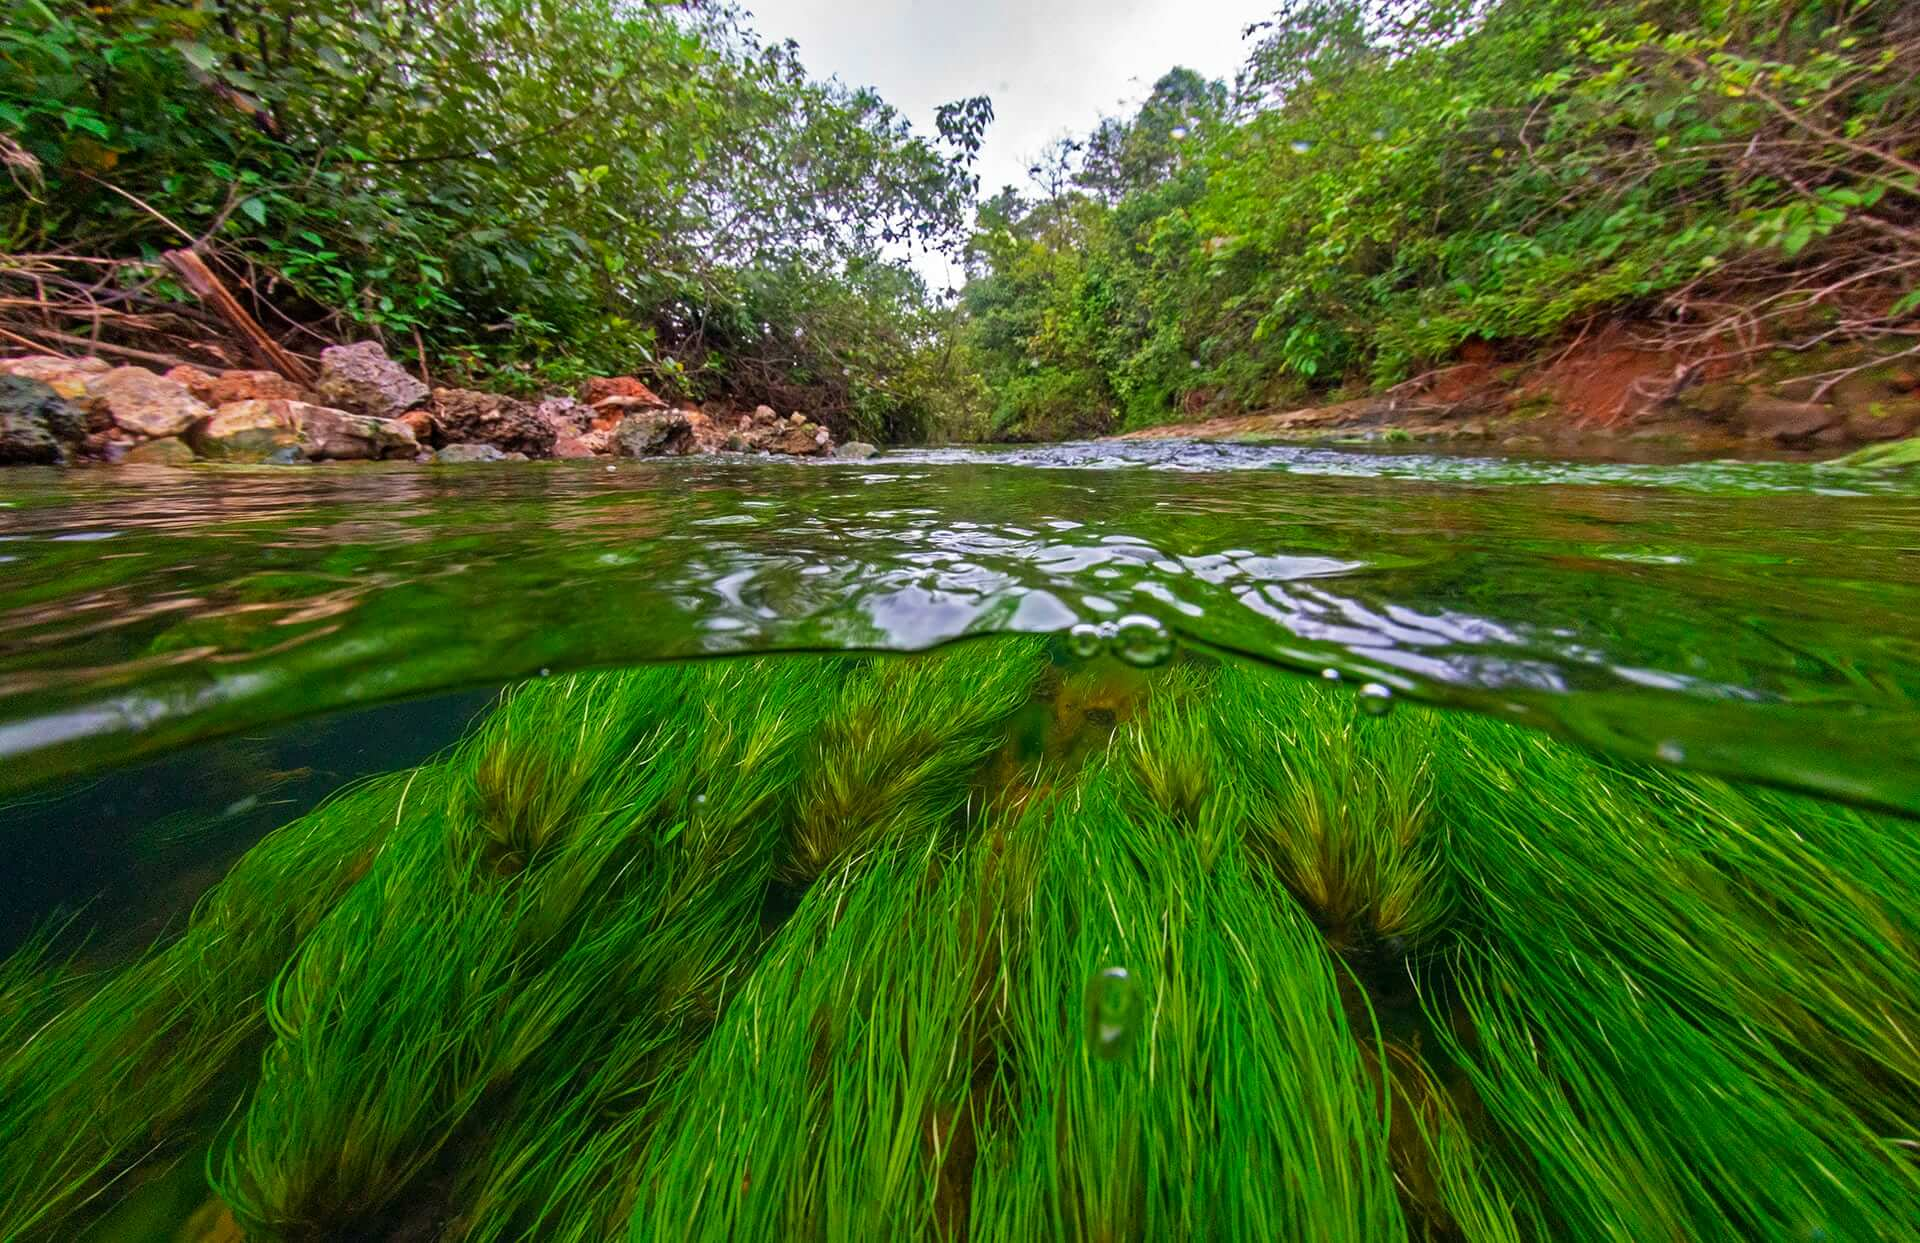 The landscape has many perennial streams, which not only maintain the water table of this landscape but are an abode to the rich aquatic biodiversity. Increased pollution and disturbance of this habitat due to tourism is slowly affecting the health of these streams.